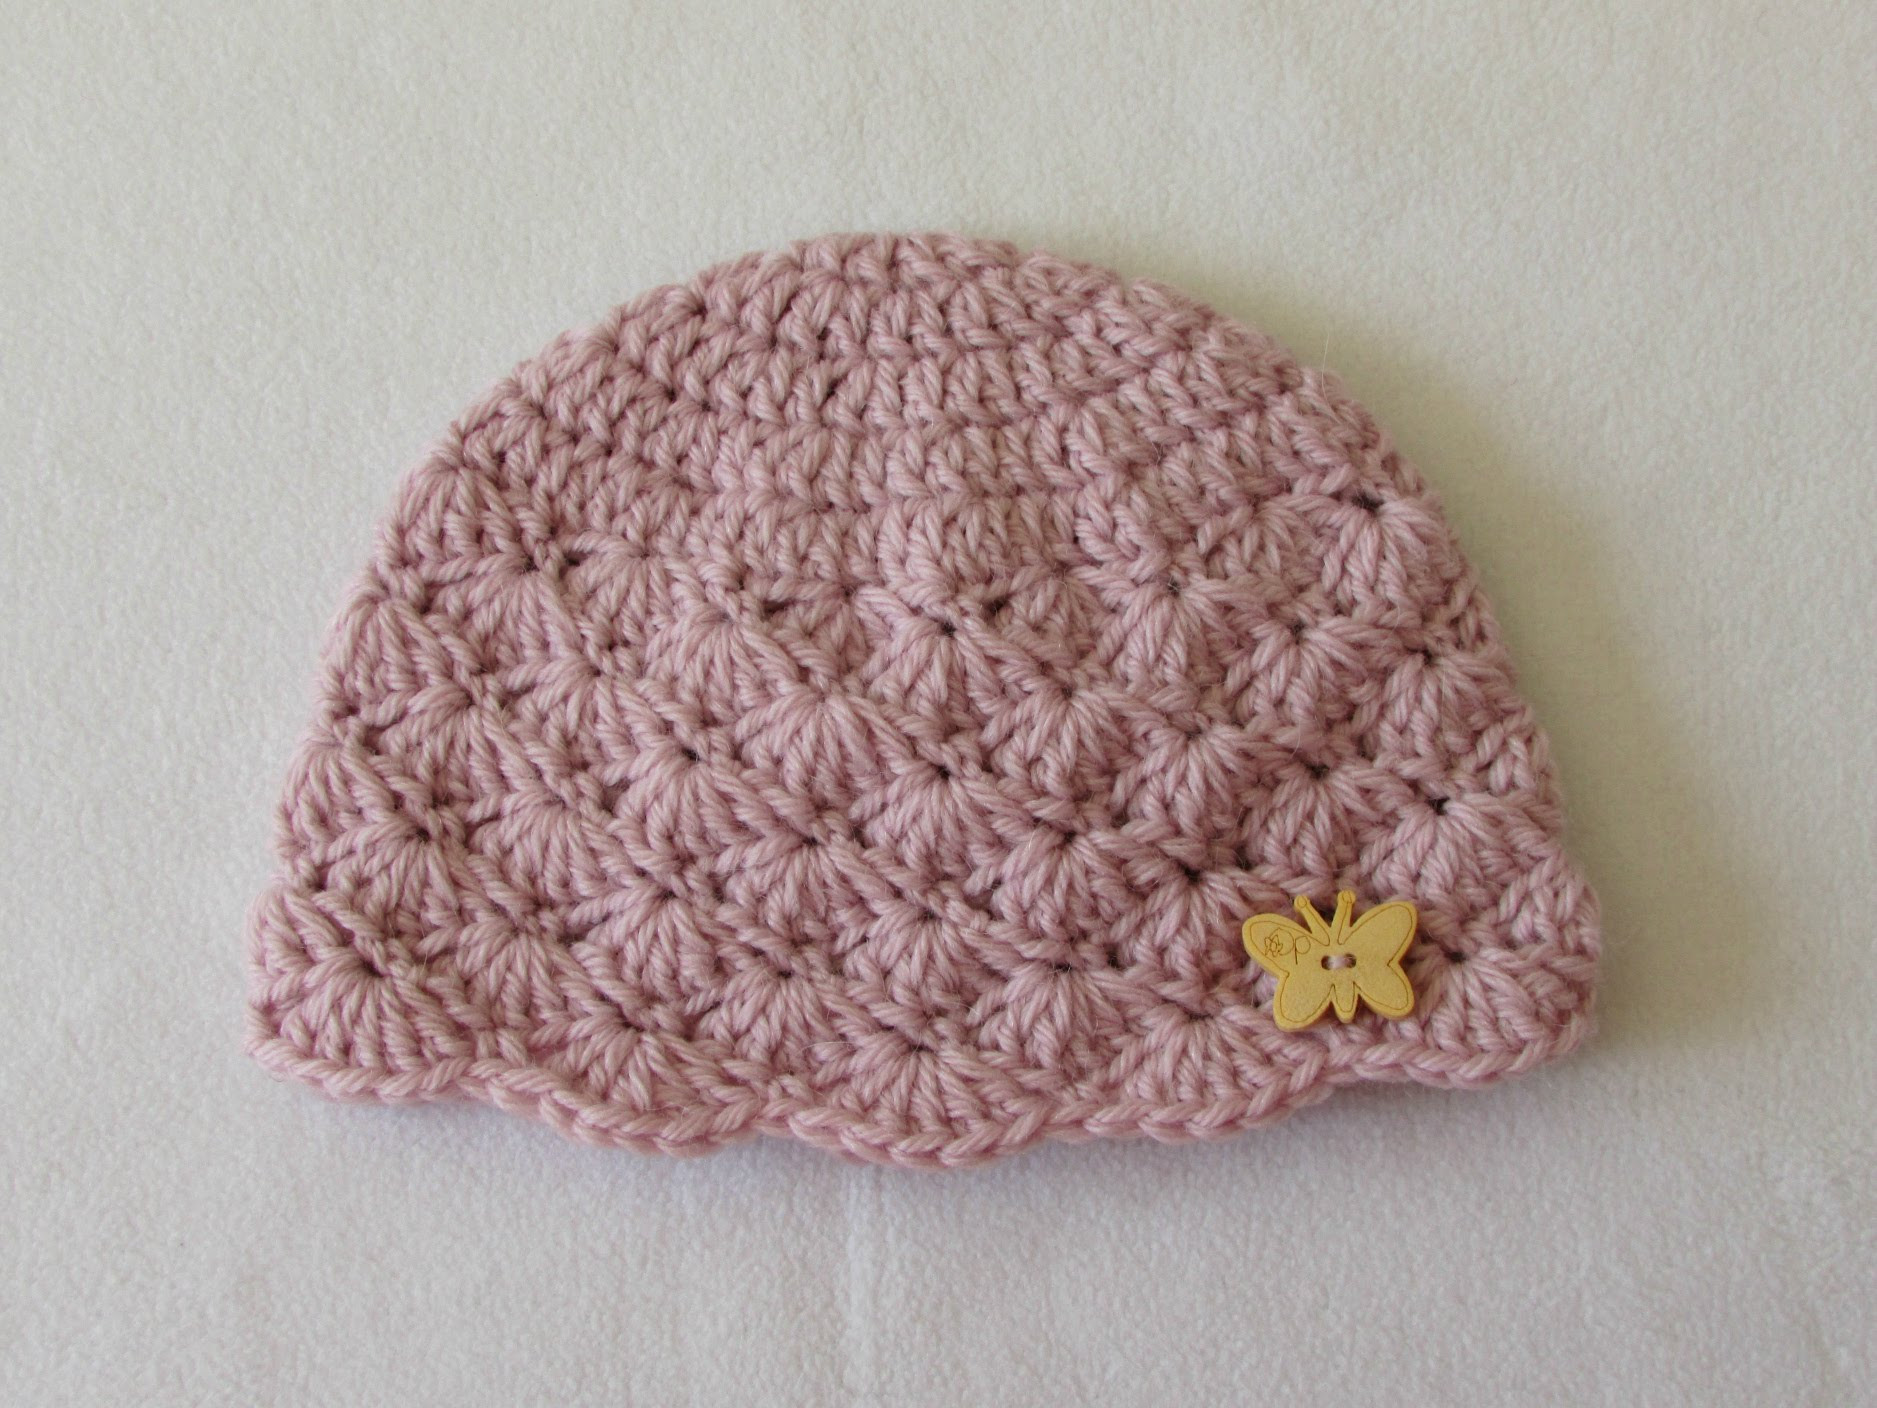 Crochet Newborn Beanie Inspirational Modern Crochet Baby Beanie Yishifashion Of Luxury 43 Pictures Crochet Newborn Beanie